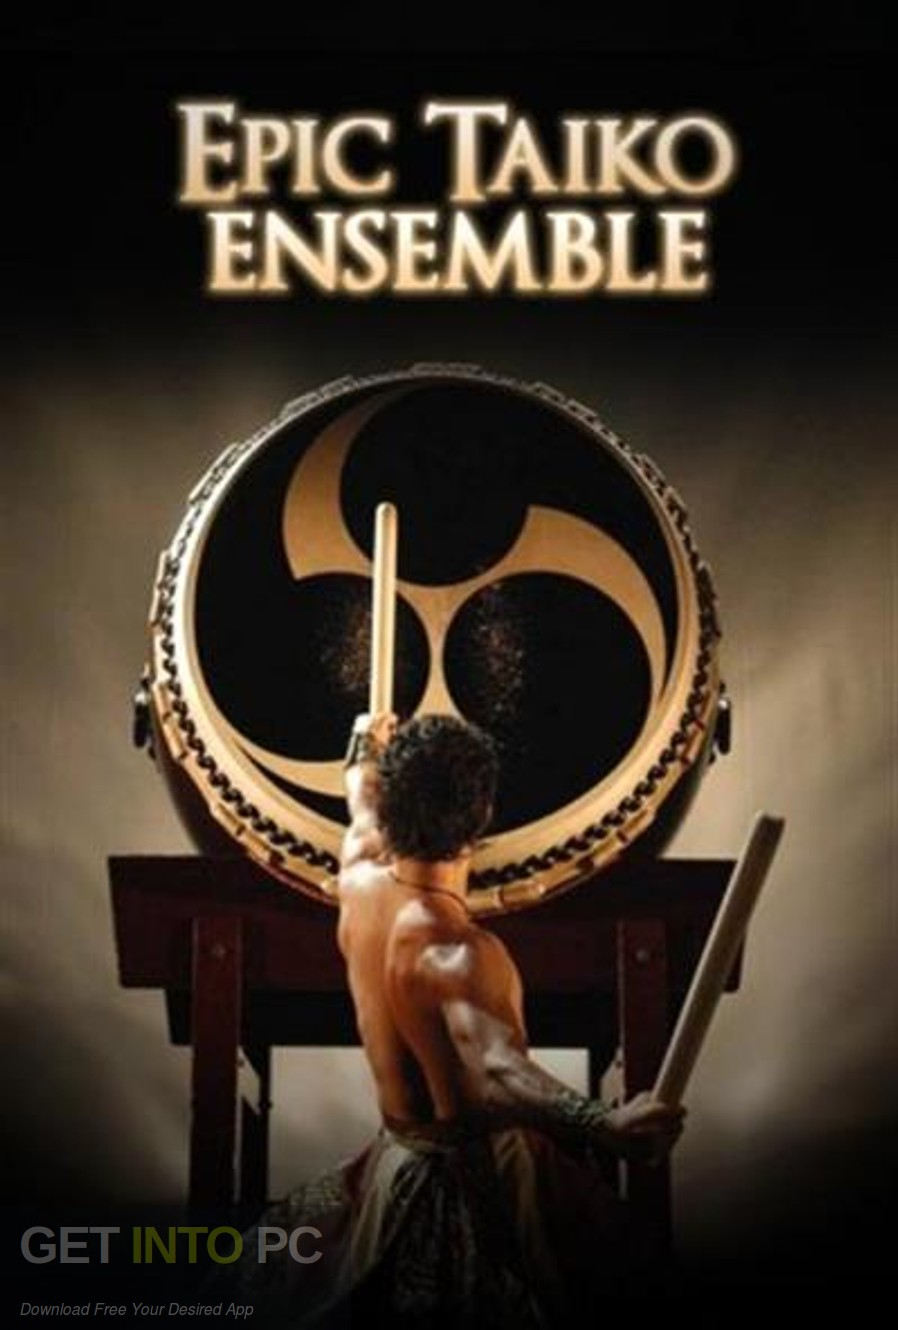 8Dio – Epic Taiko Ensemble (KONTAKT) Free Download PcHippo